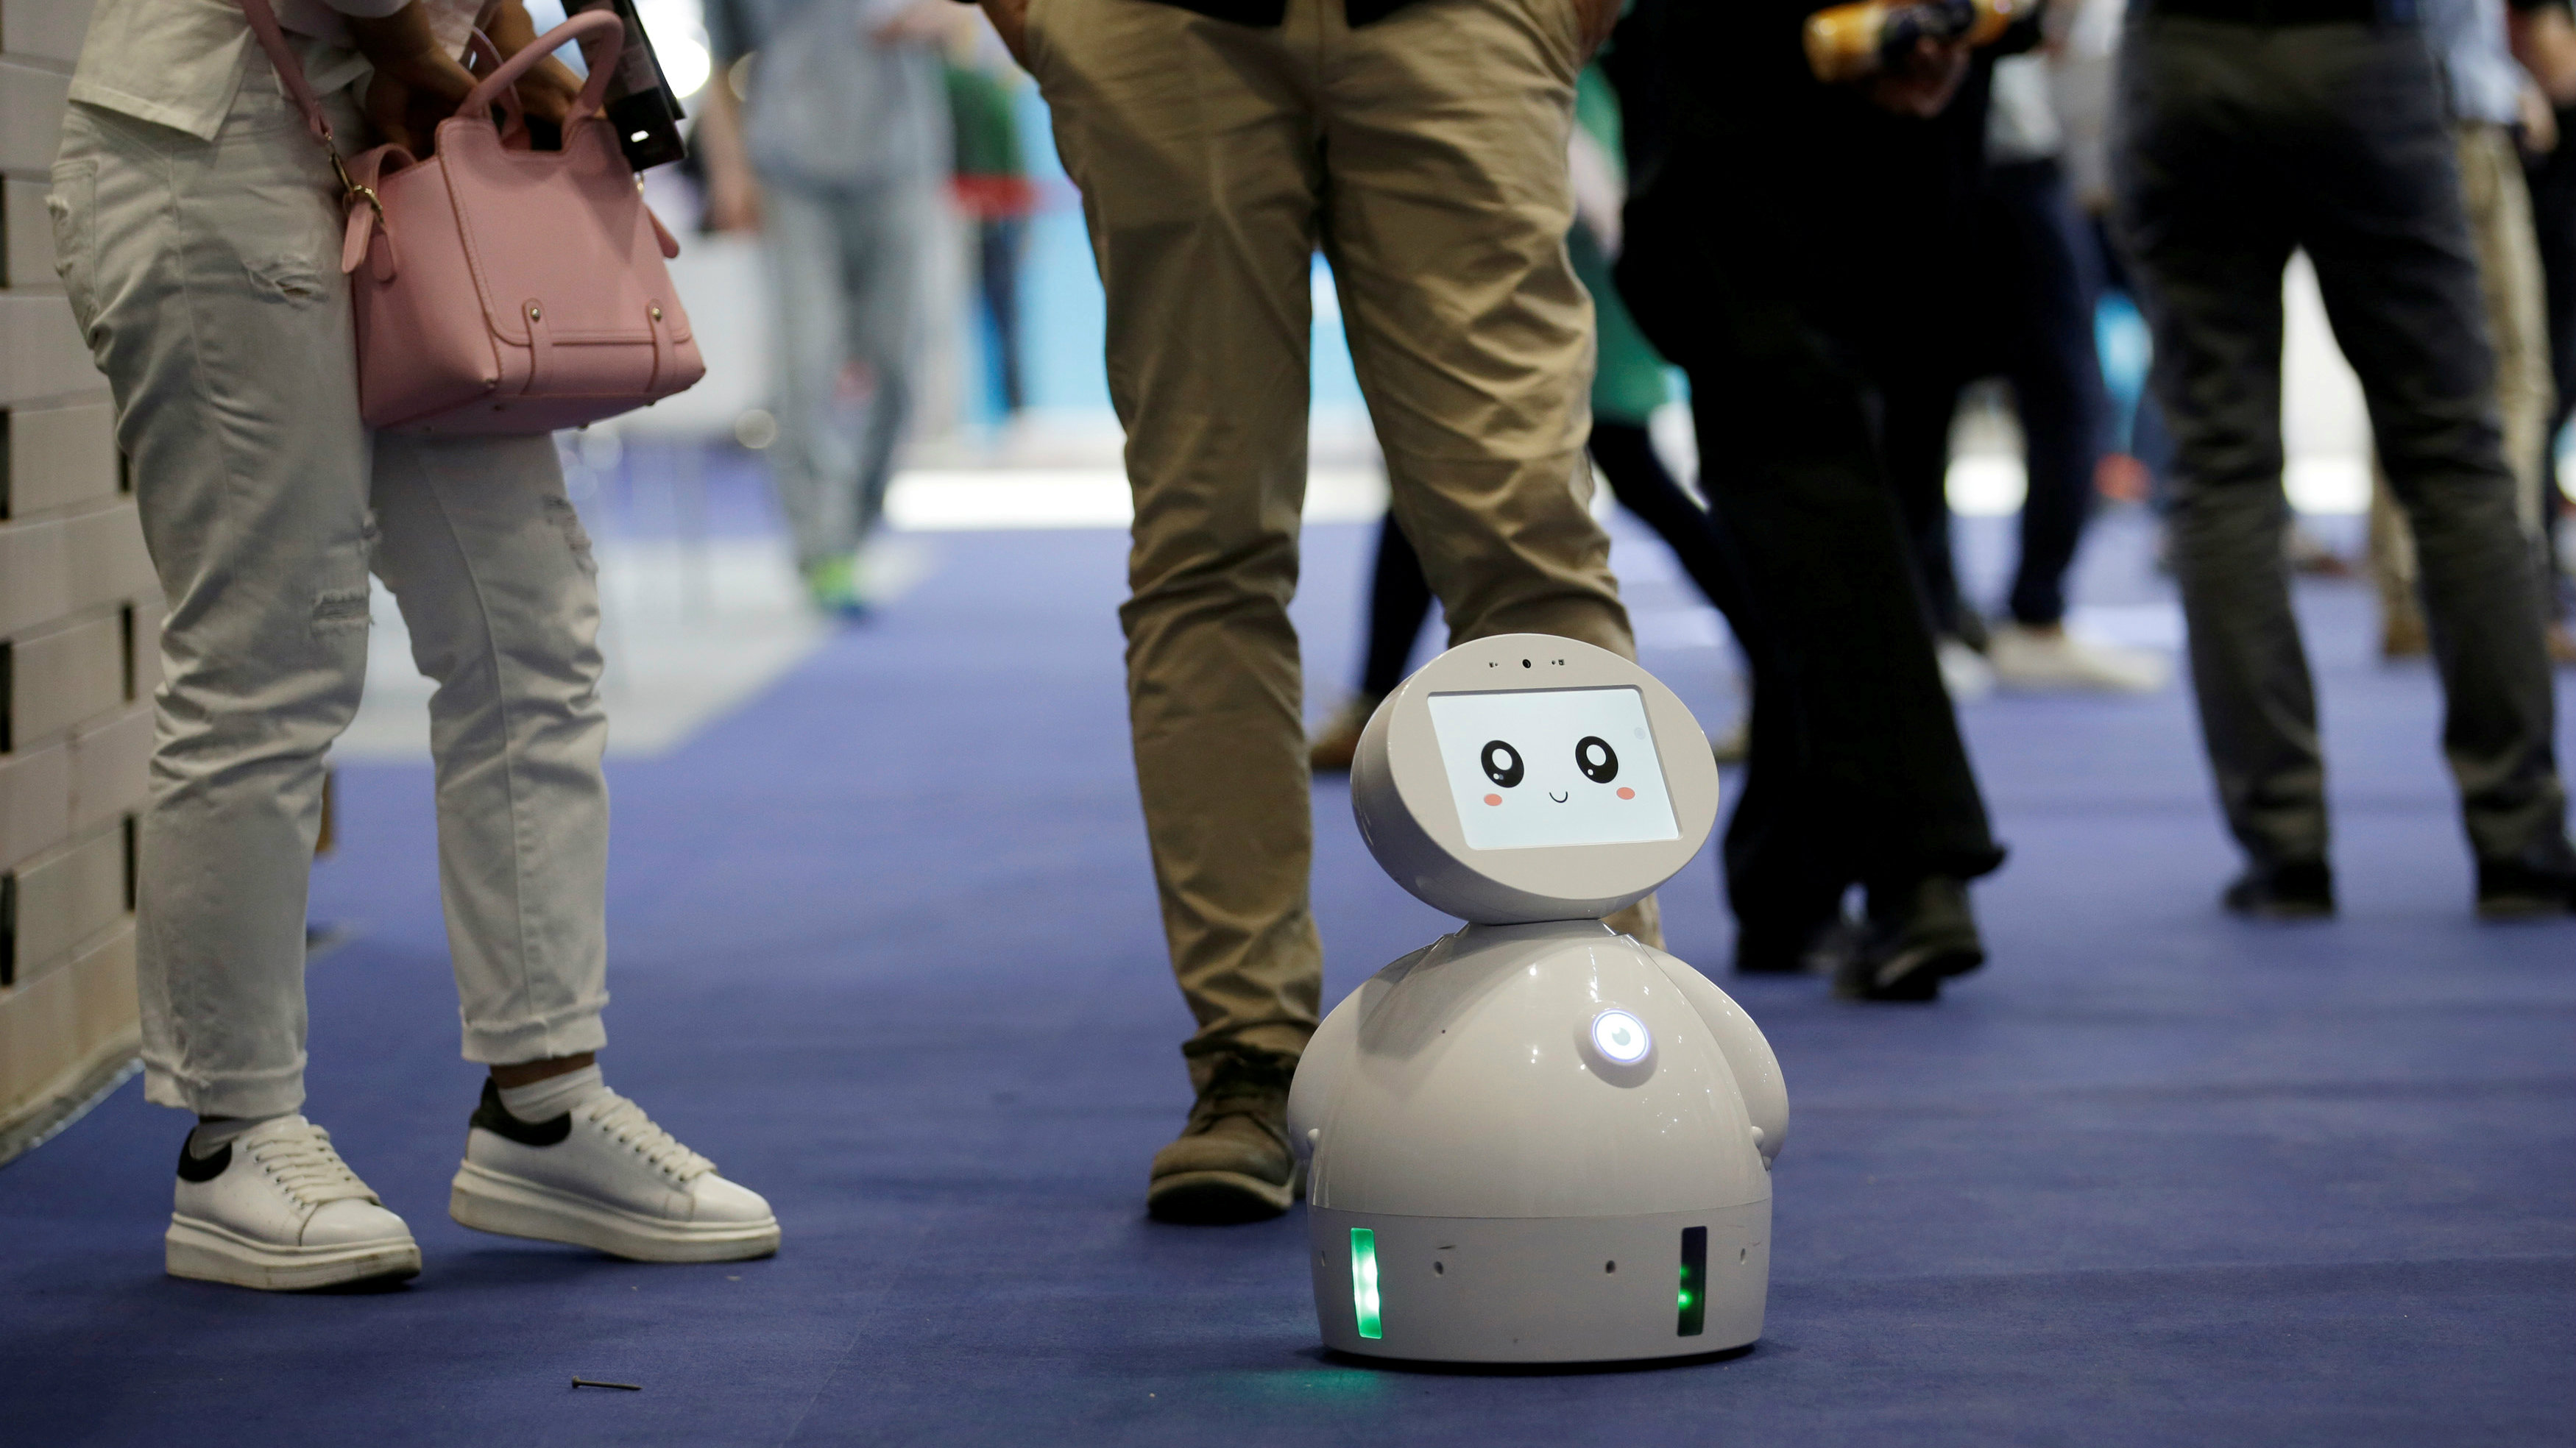 a ROBOTLEO robot at the Global Mobile Internet Conference in Beijing